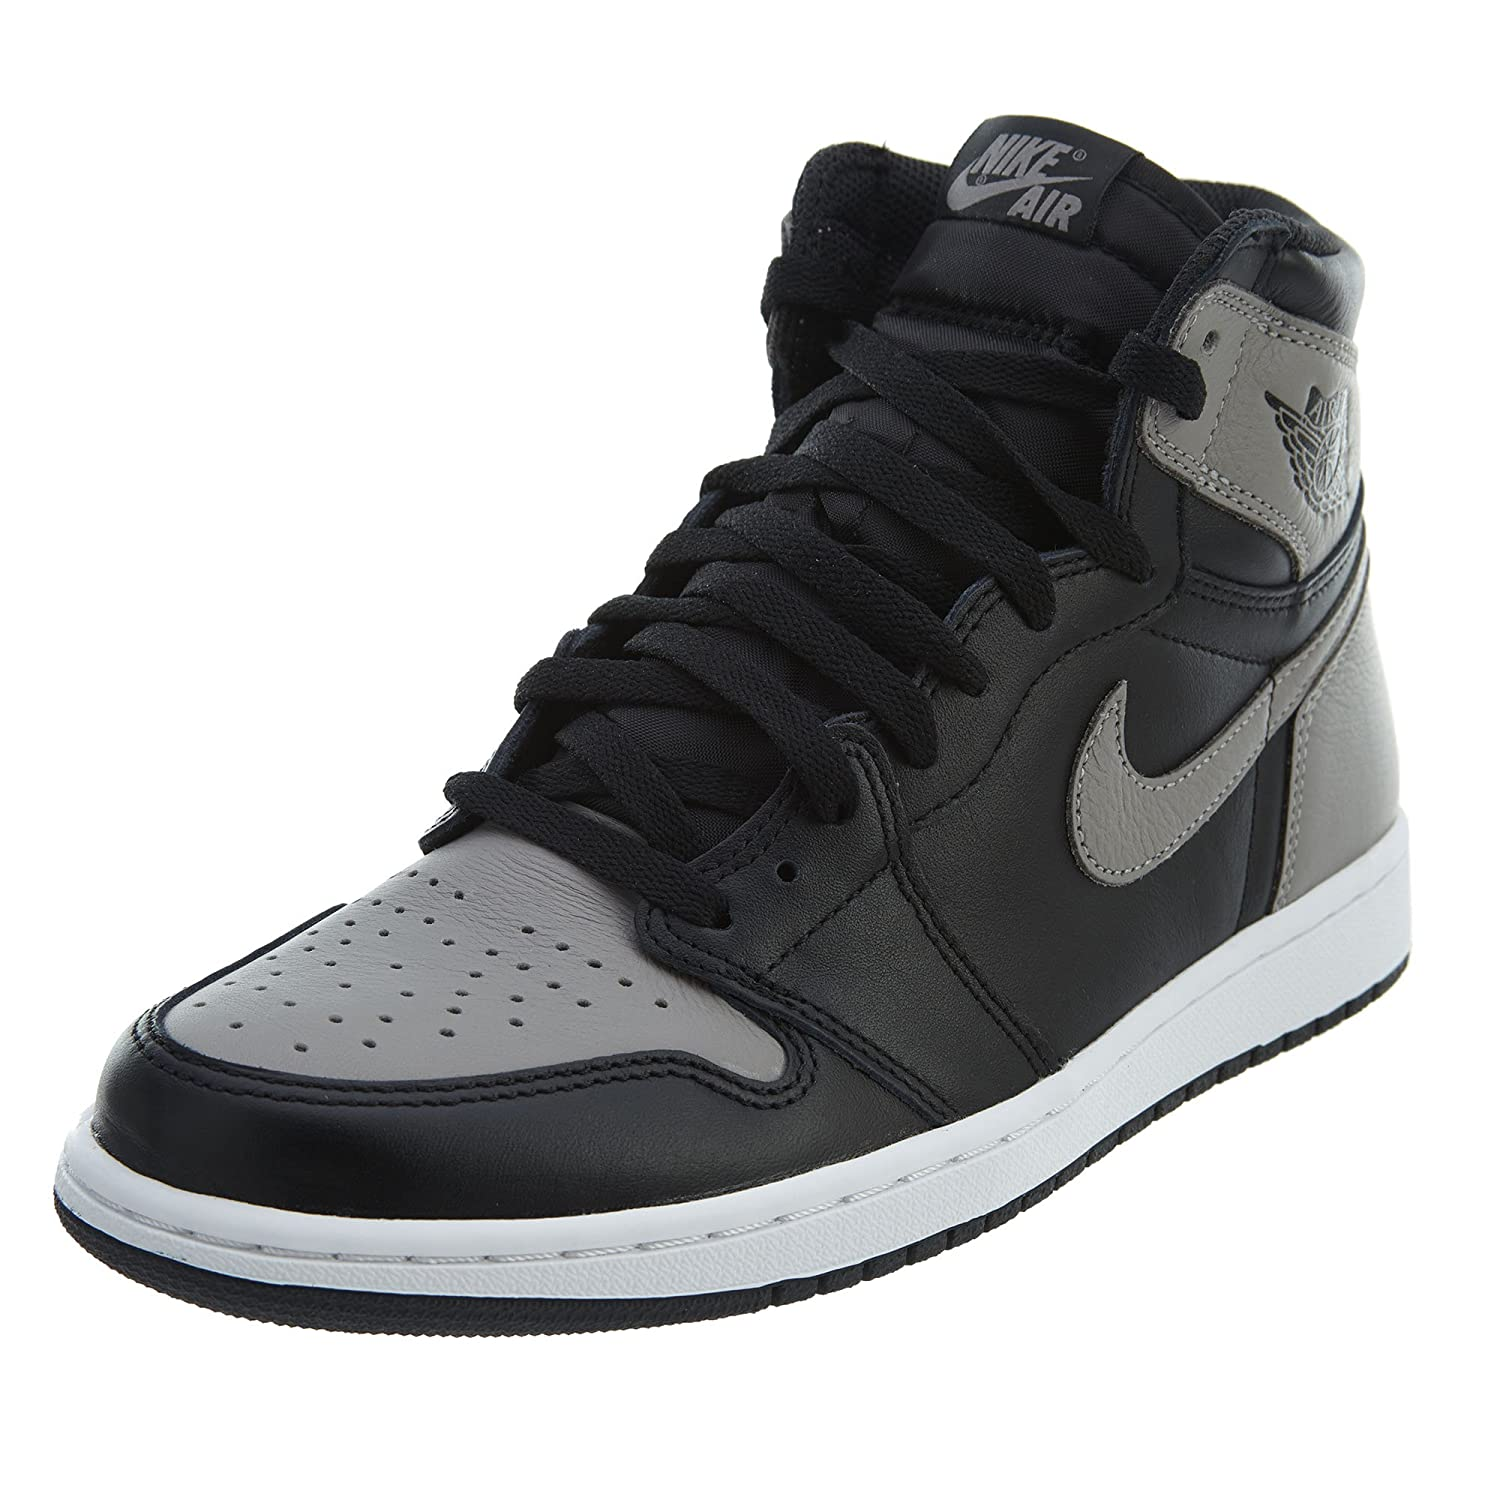 wholesale dealer 1b52b 8c0cf Jordan 1 Retro High Mens Style: 555088-013 Size: 11.5